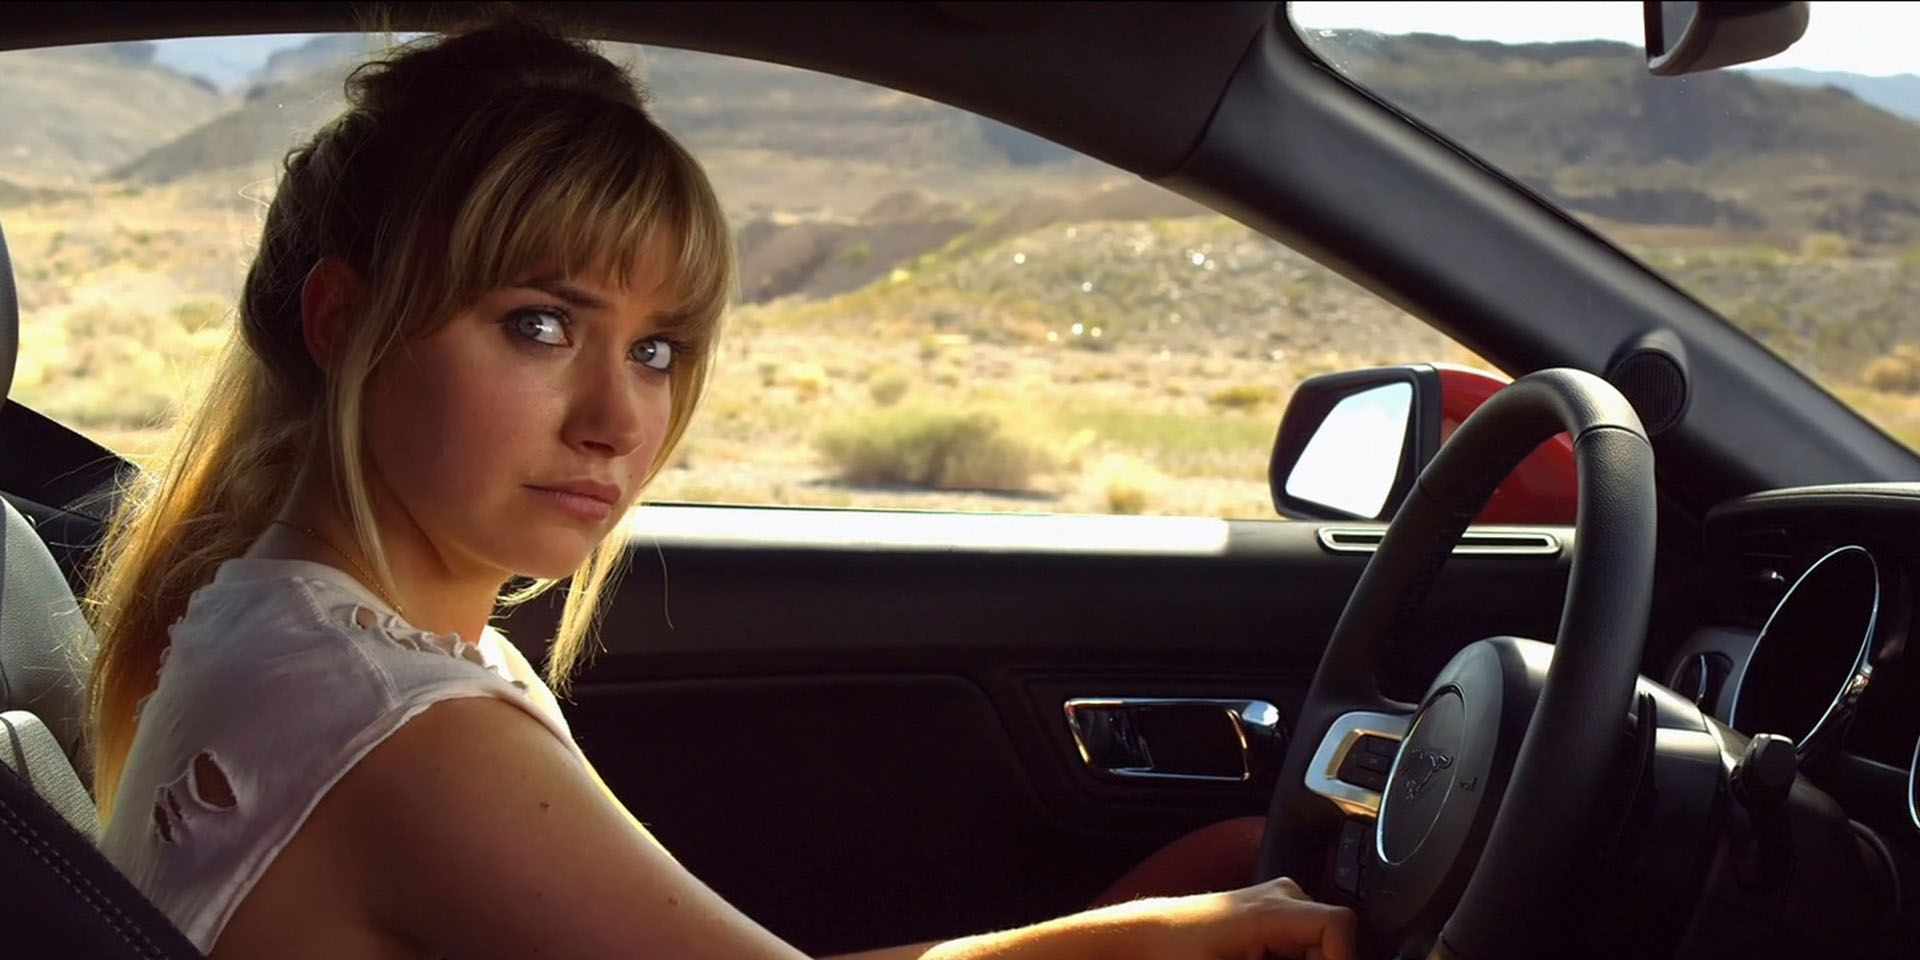 Imogen Poots Need For Speed Jpg 1920 960 Imogen Poots Need For Speed Julia Maddon